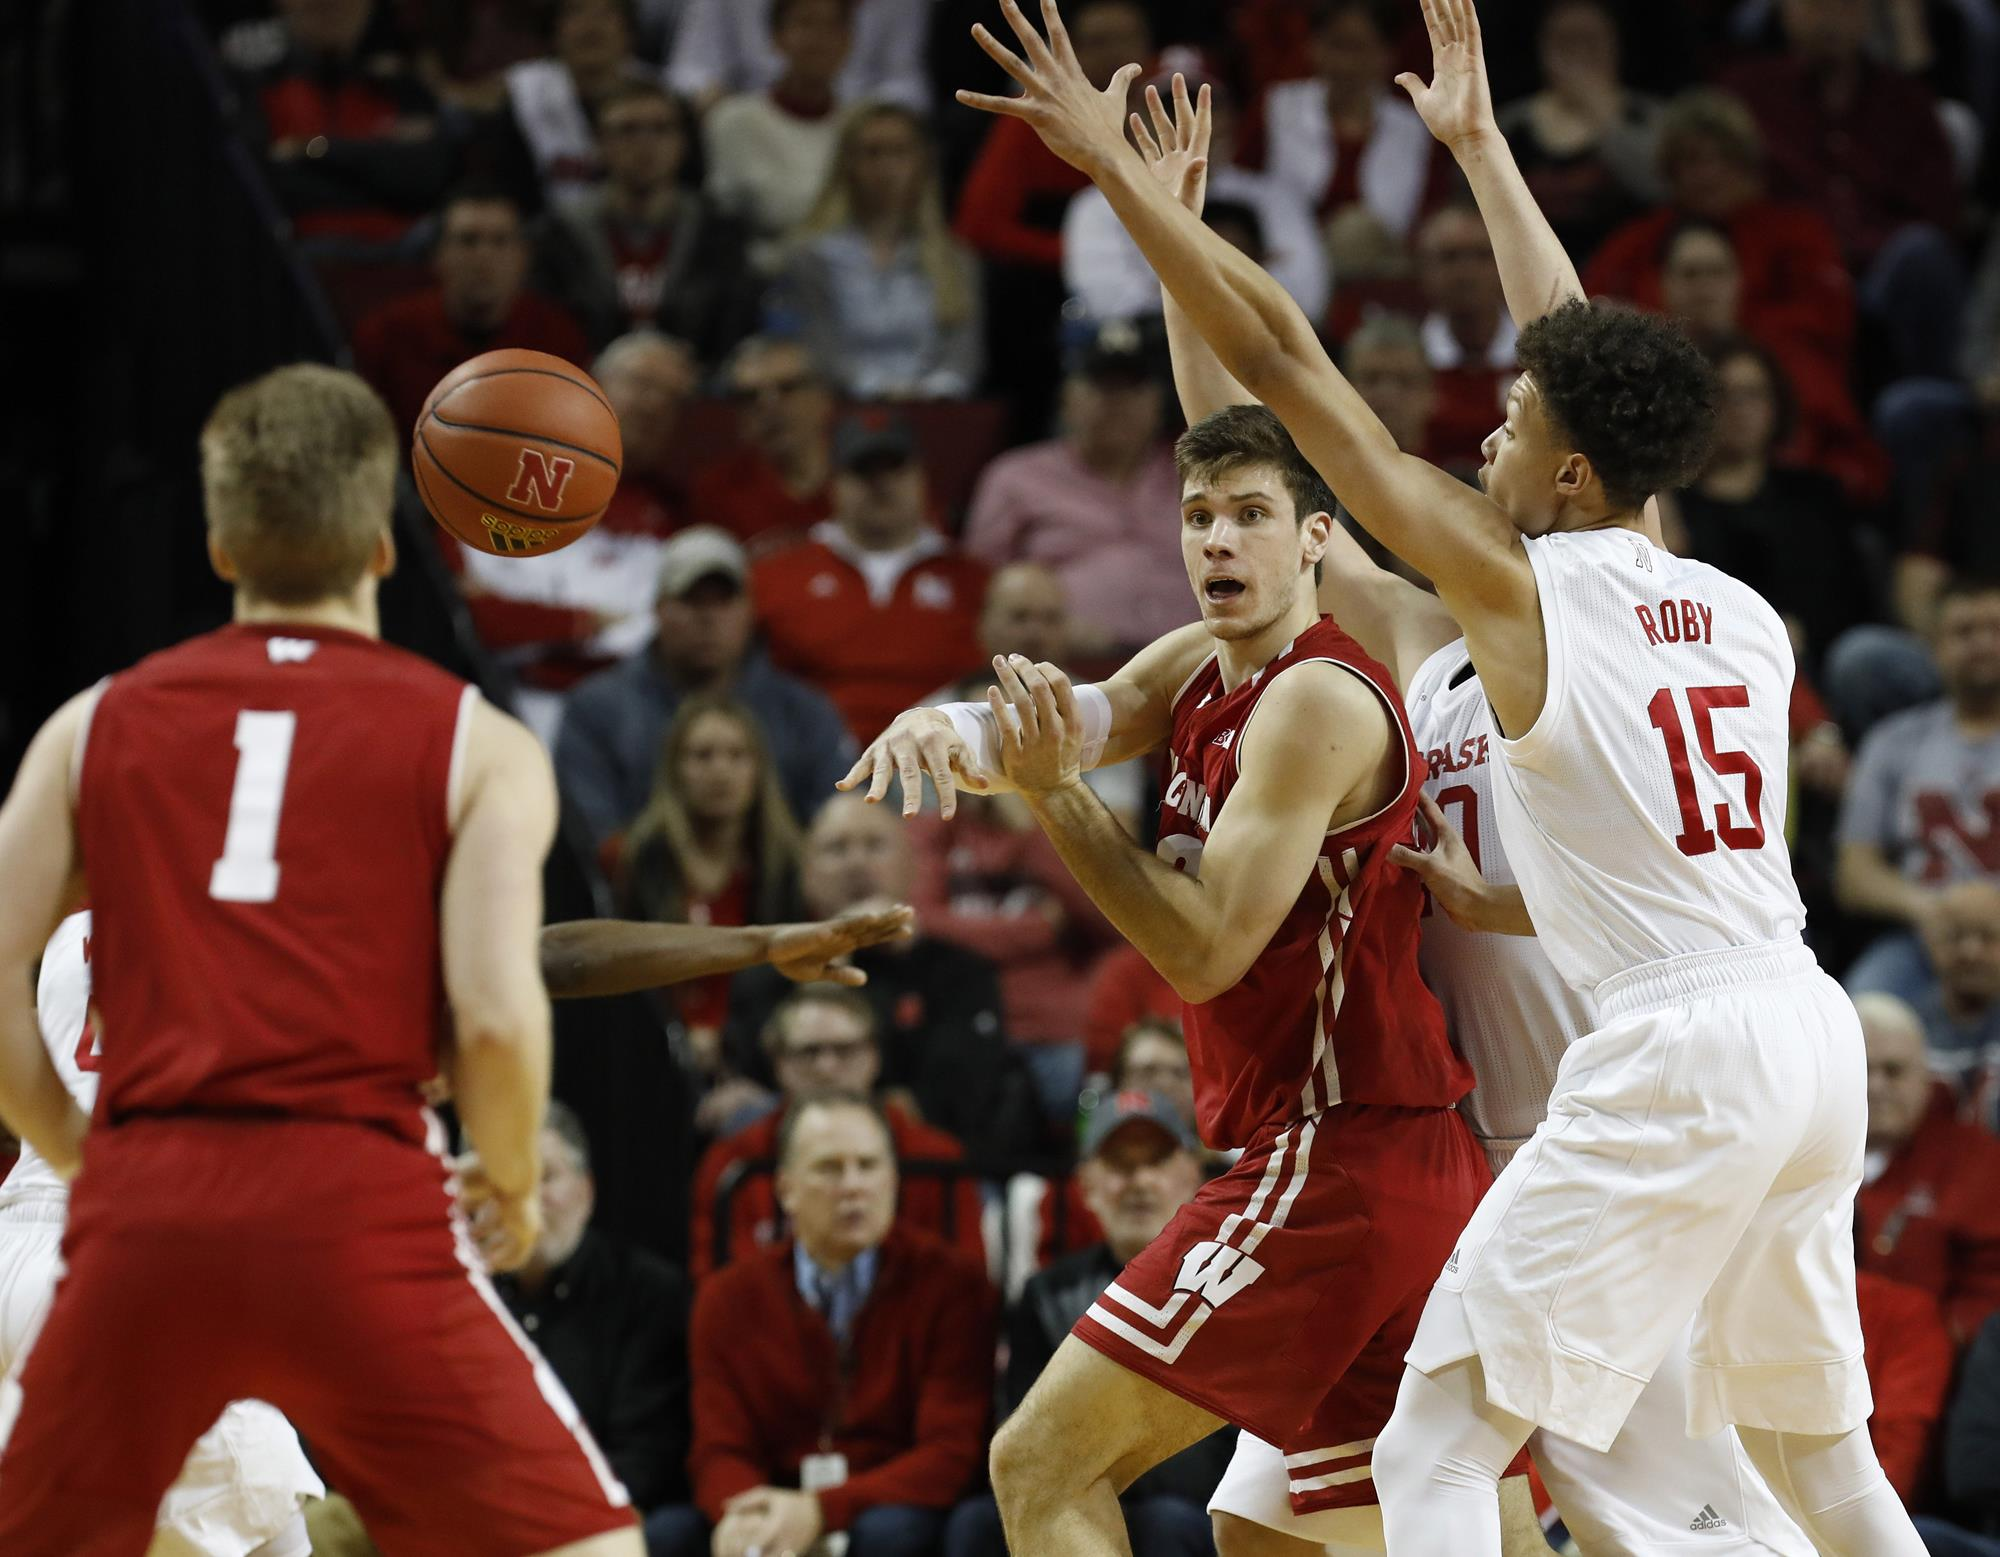 Badgers late run falls short in loss to Nebraska